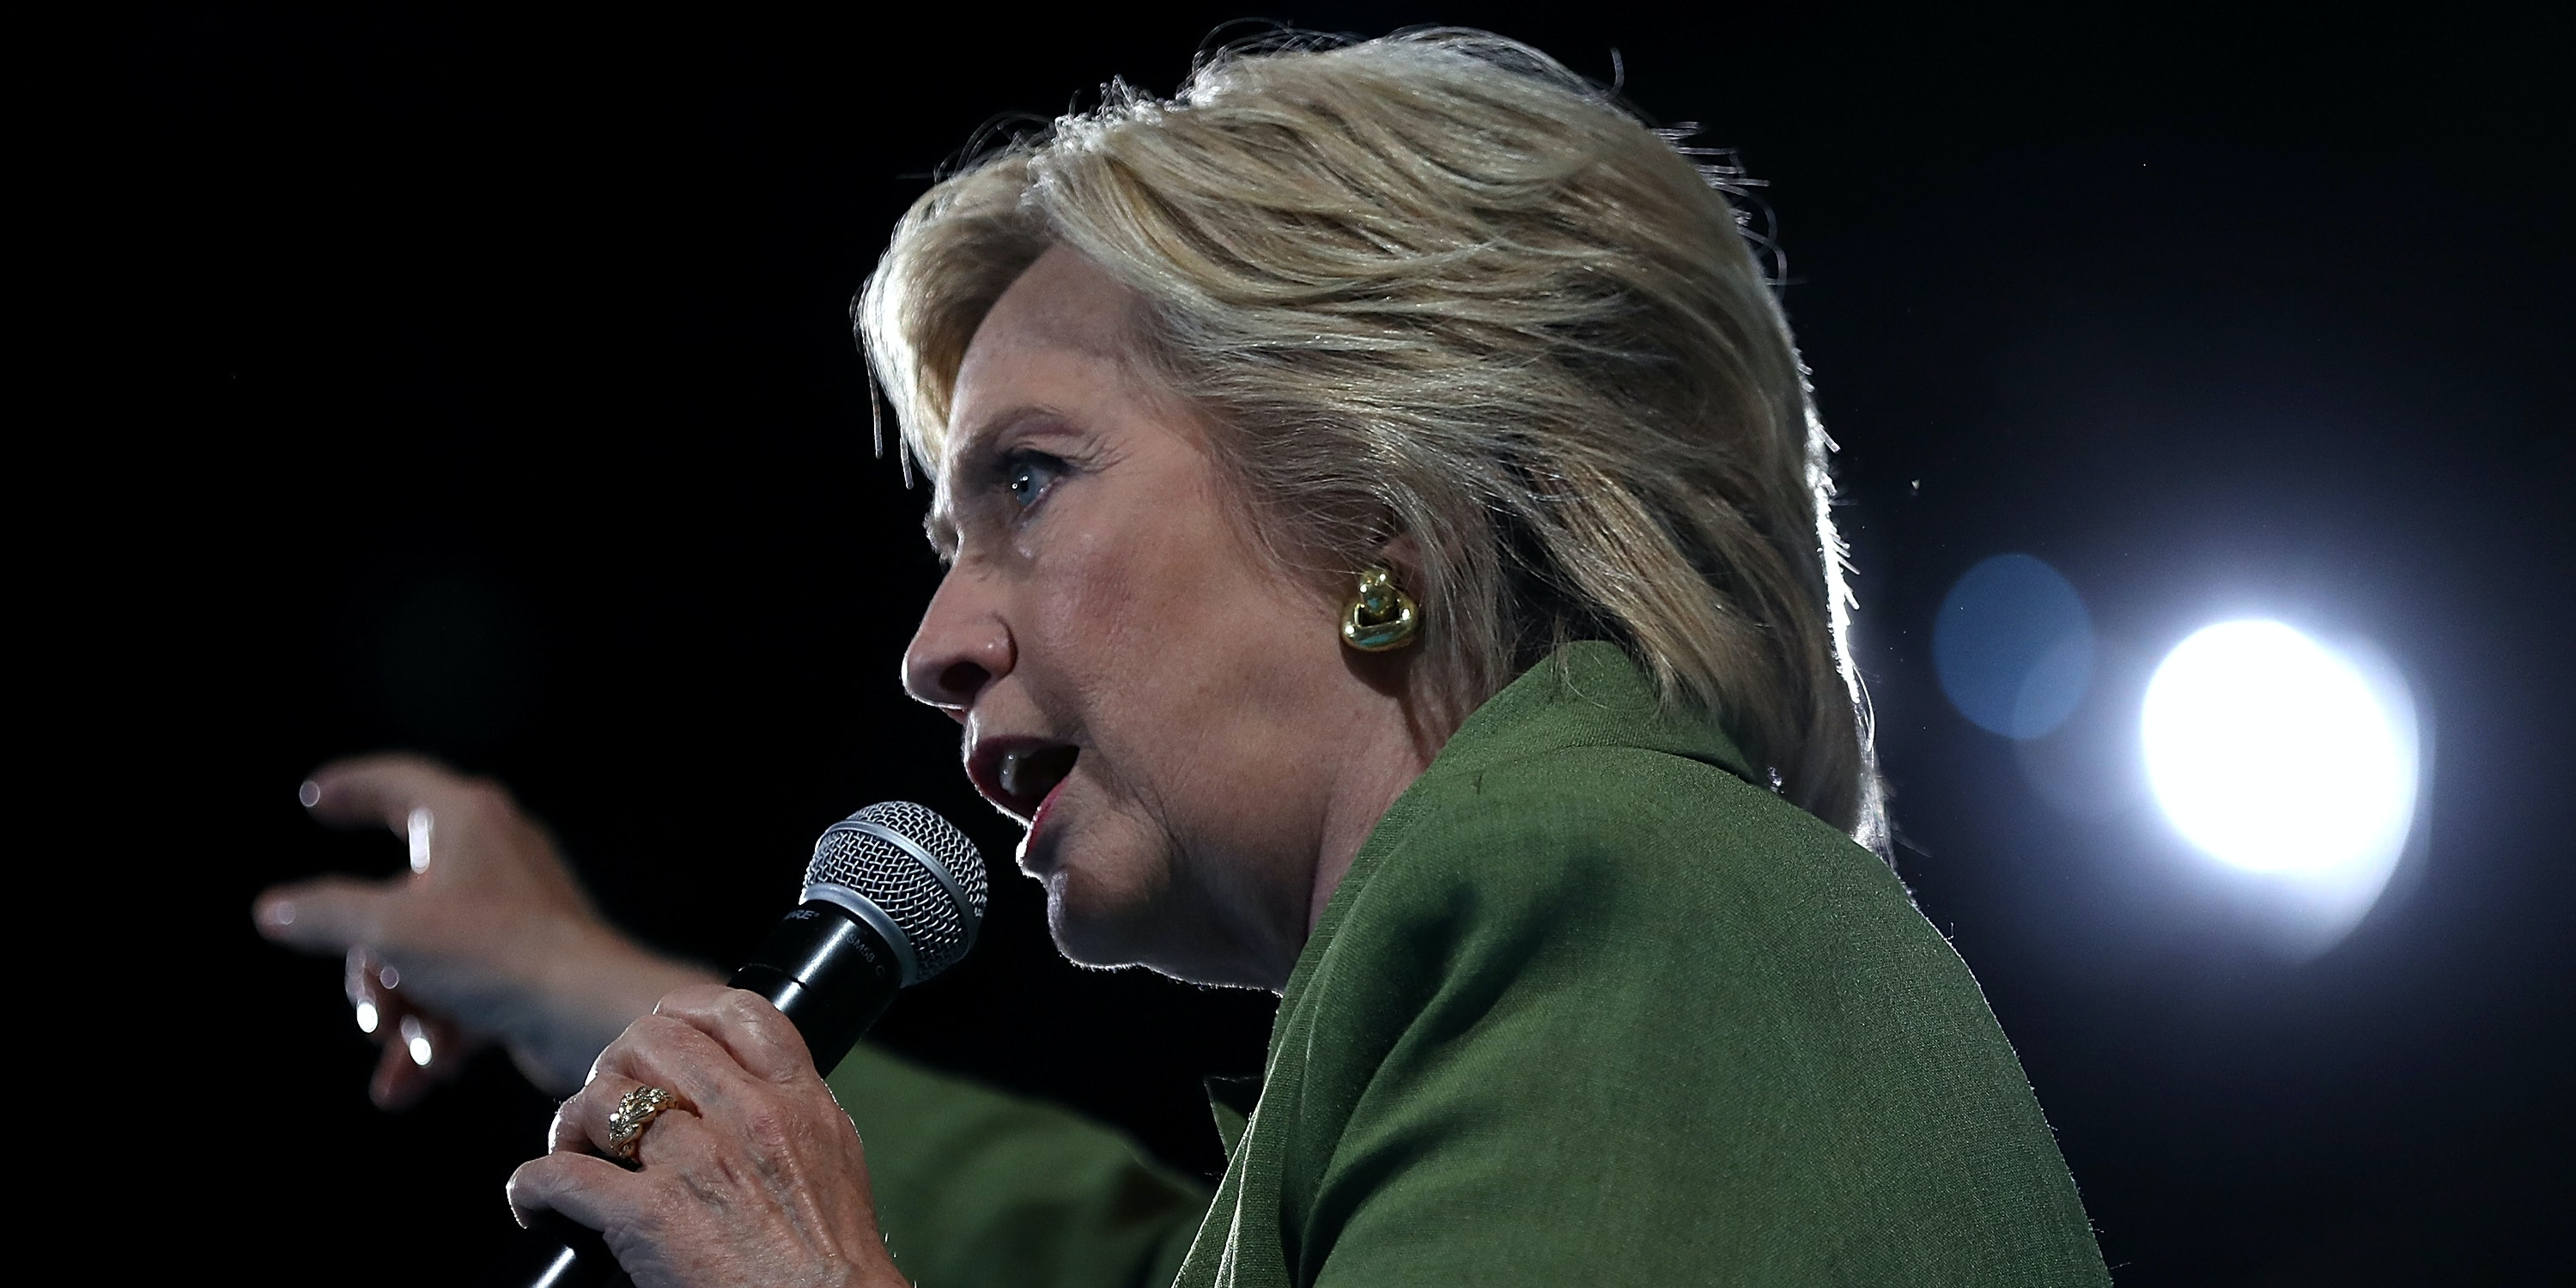 Hillary Clinton's voice and modulation has changed noticeably since her college graduation in 1969.